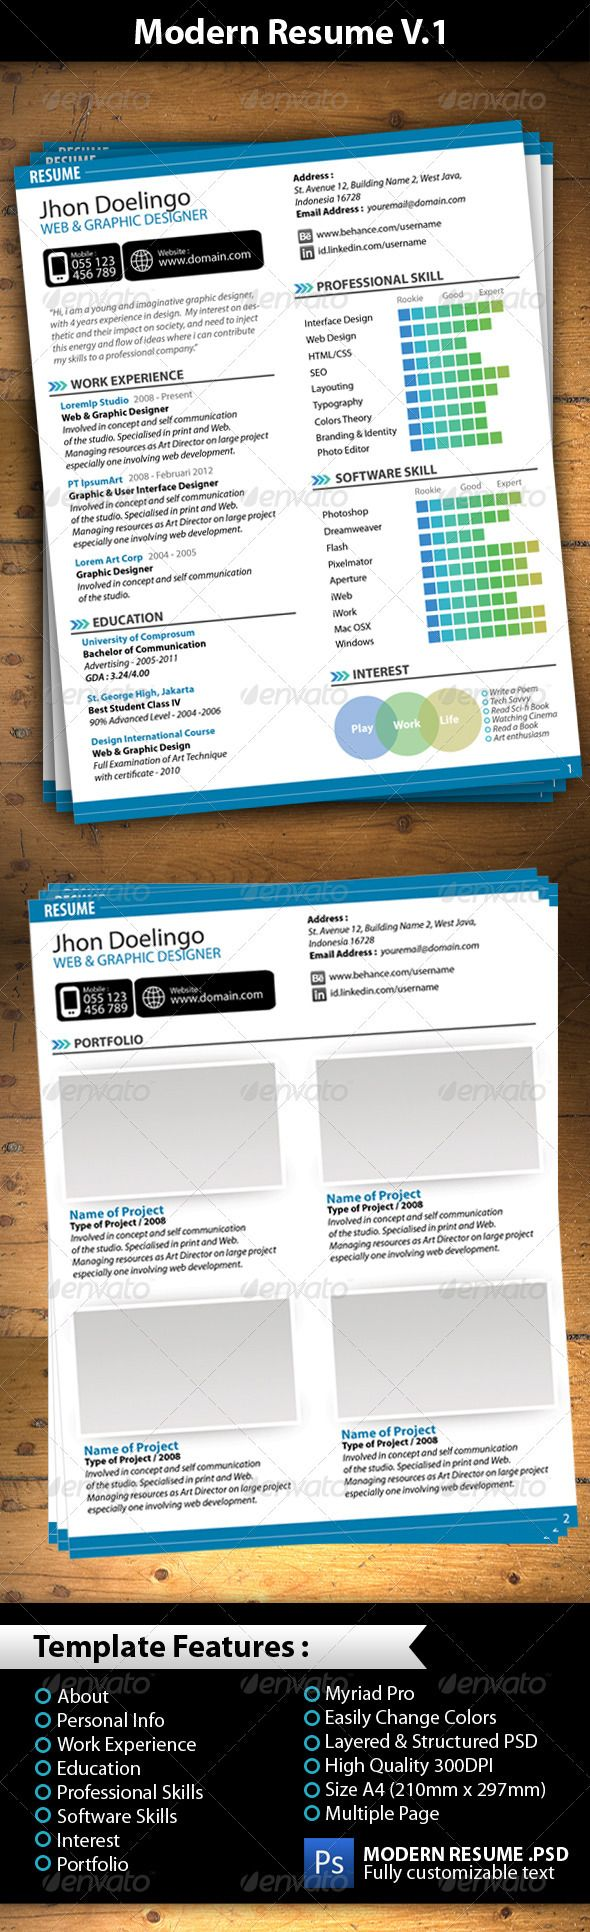 Best Freebie Images On   Resume Templates Business